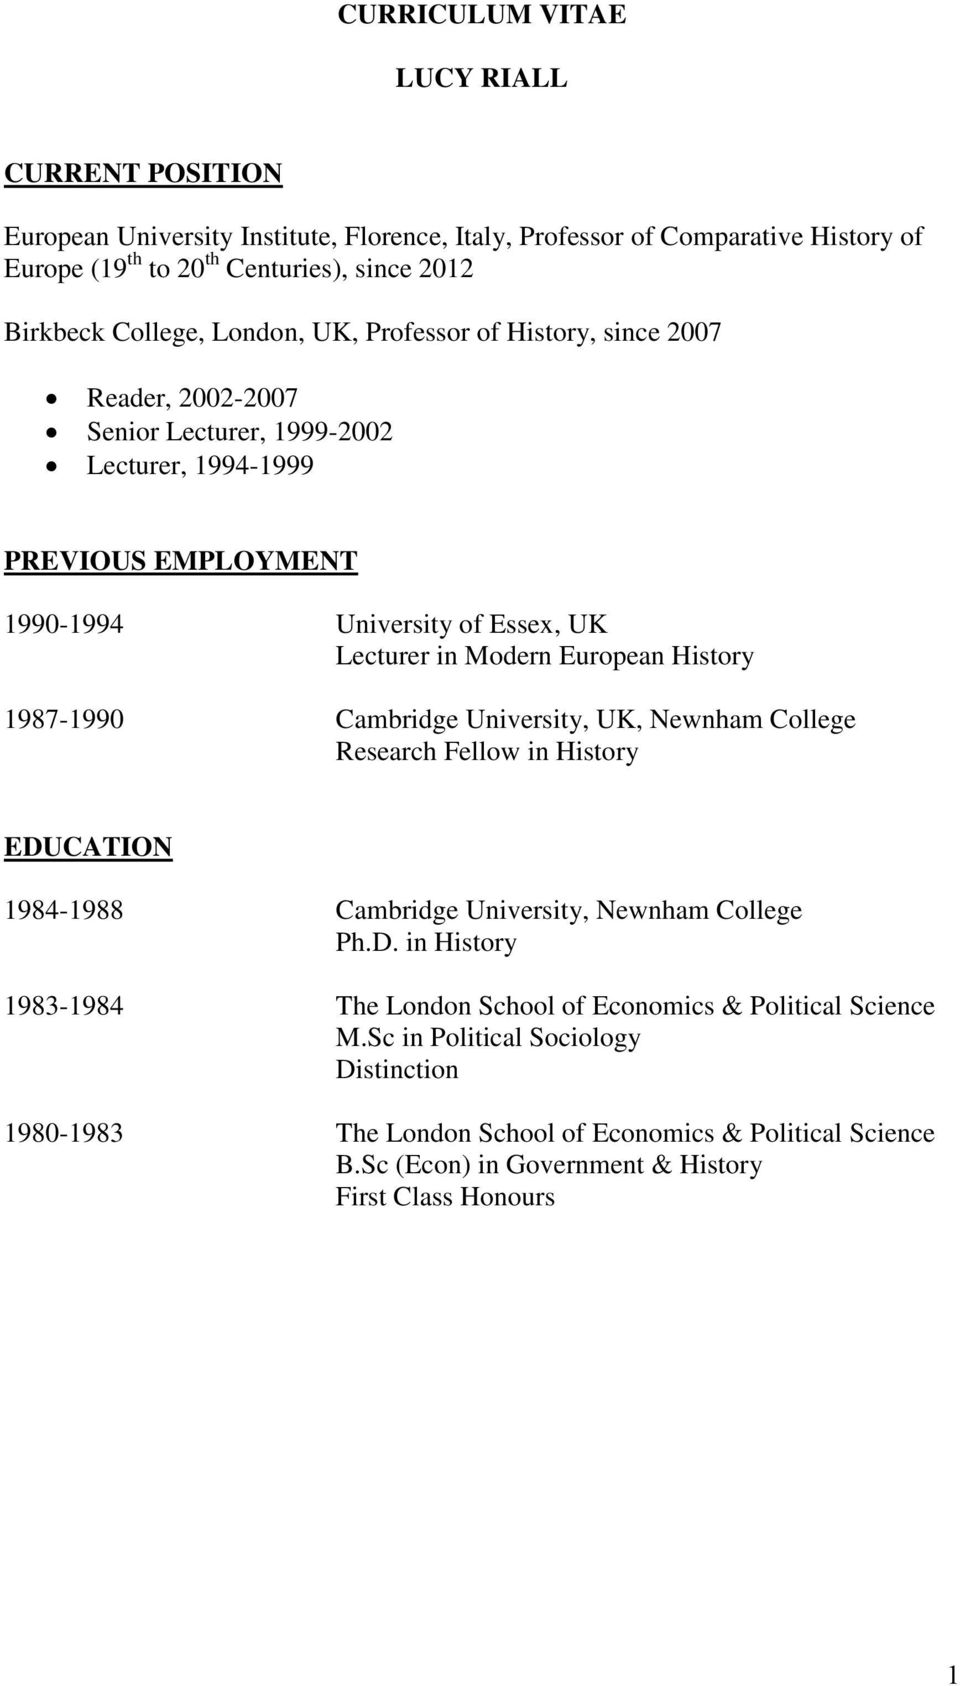 European History 1987-1990 Cambridge University, UK, Newnham College Research Fellow in History EDUCATION 1984-1988 Cambridge University, Newnham College Ph.D. in History 1983-1984 The London School of Economics & Political Science M.